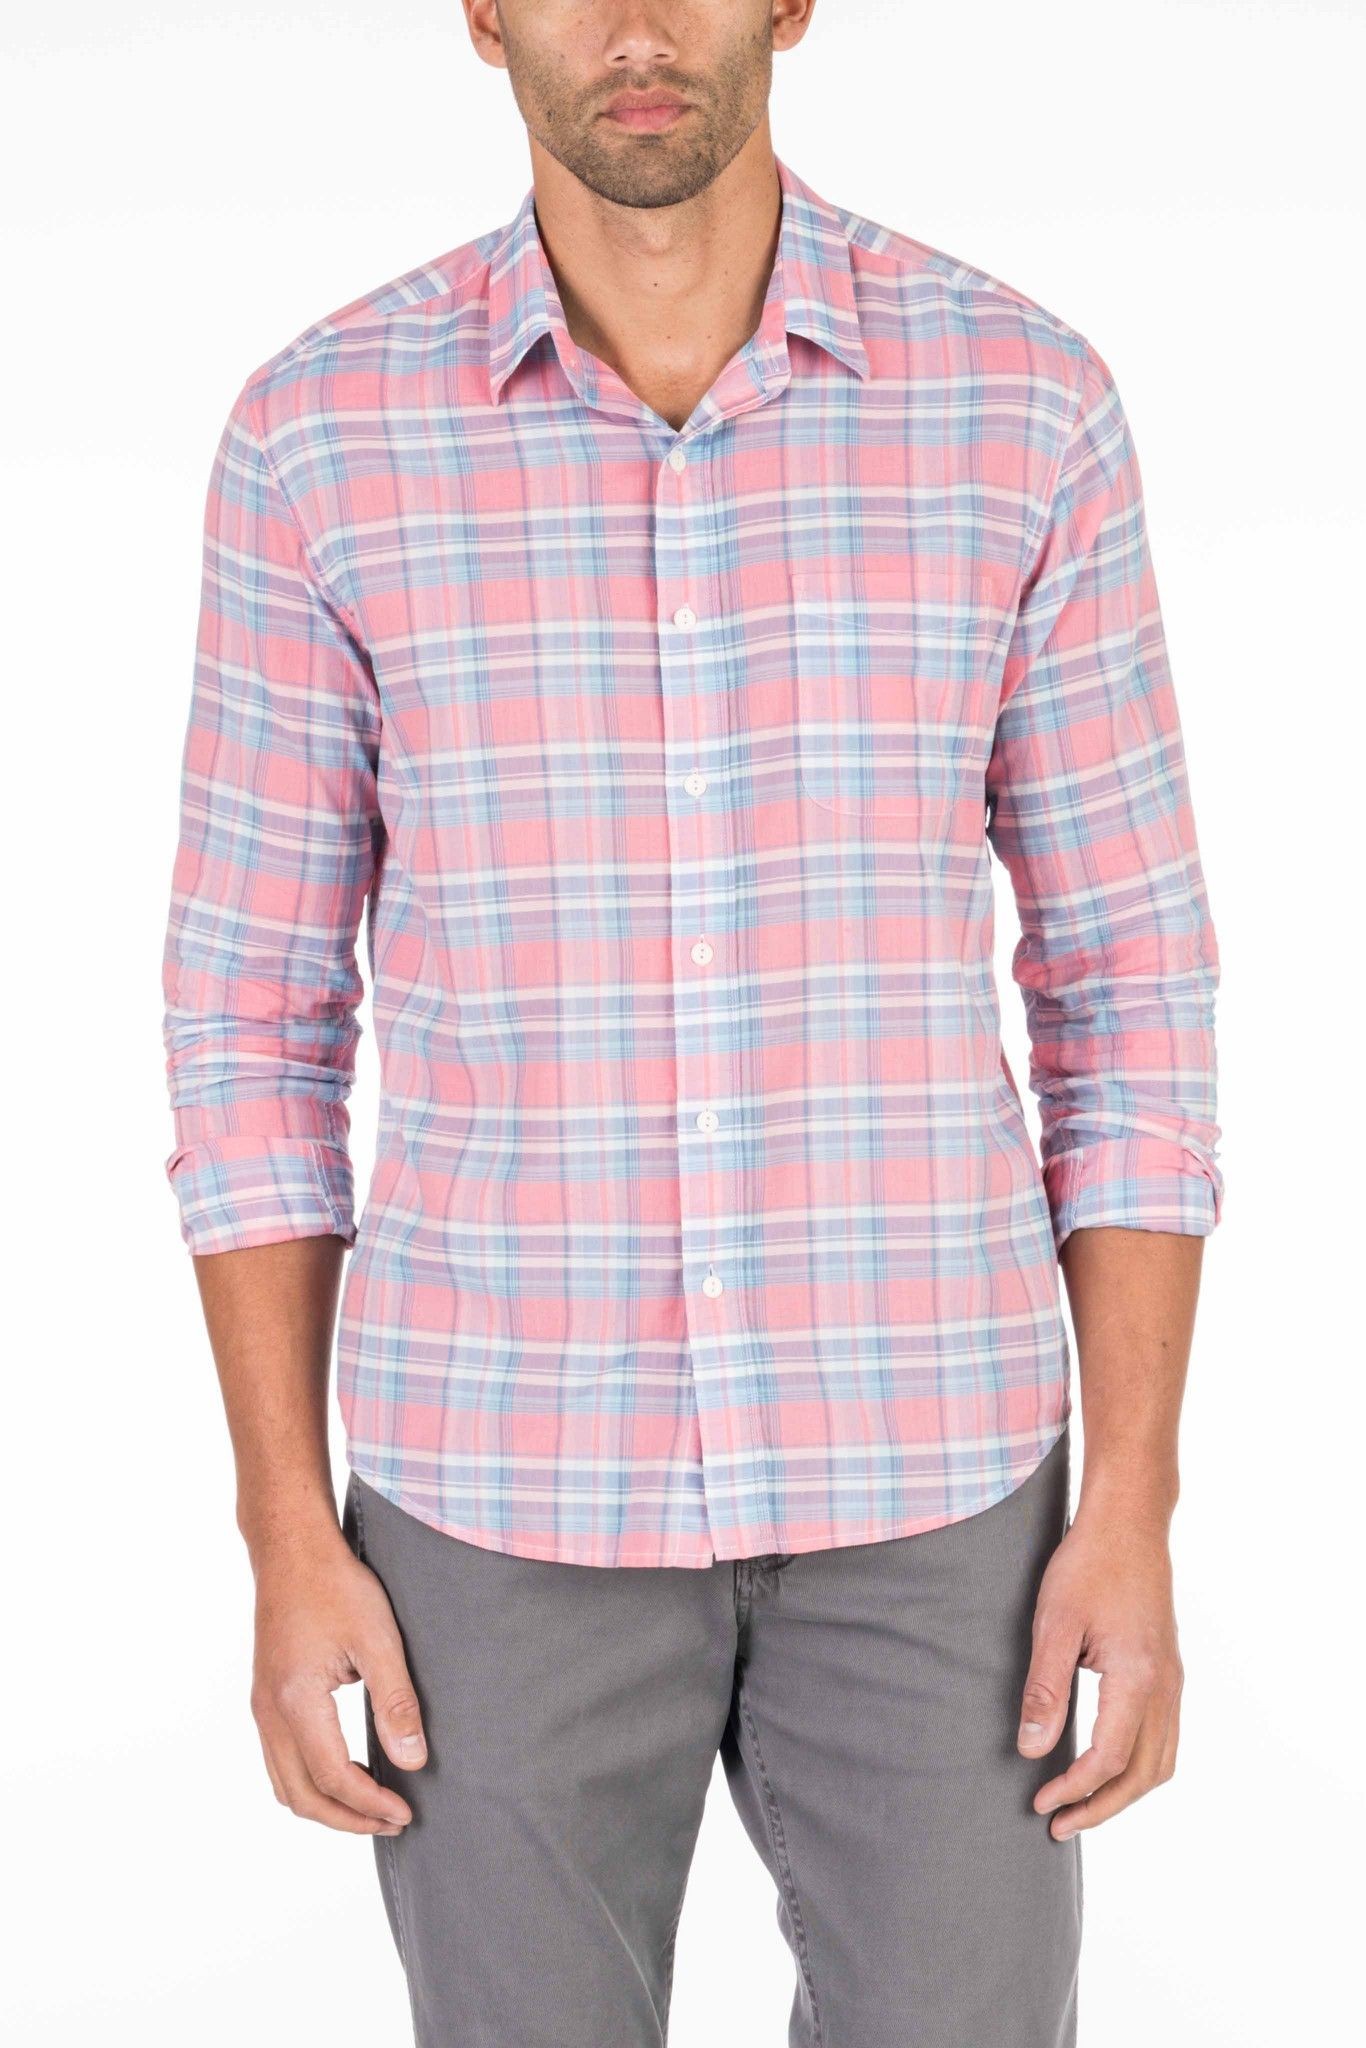 436951df FAHERTY Summer Blend Shirt - Red Plaid. #faherty #cloth # | Faherty ...